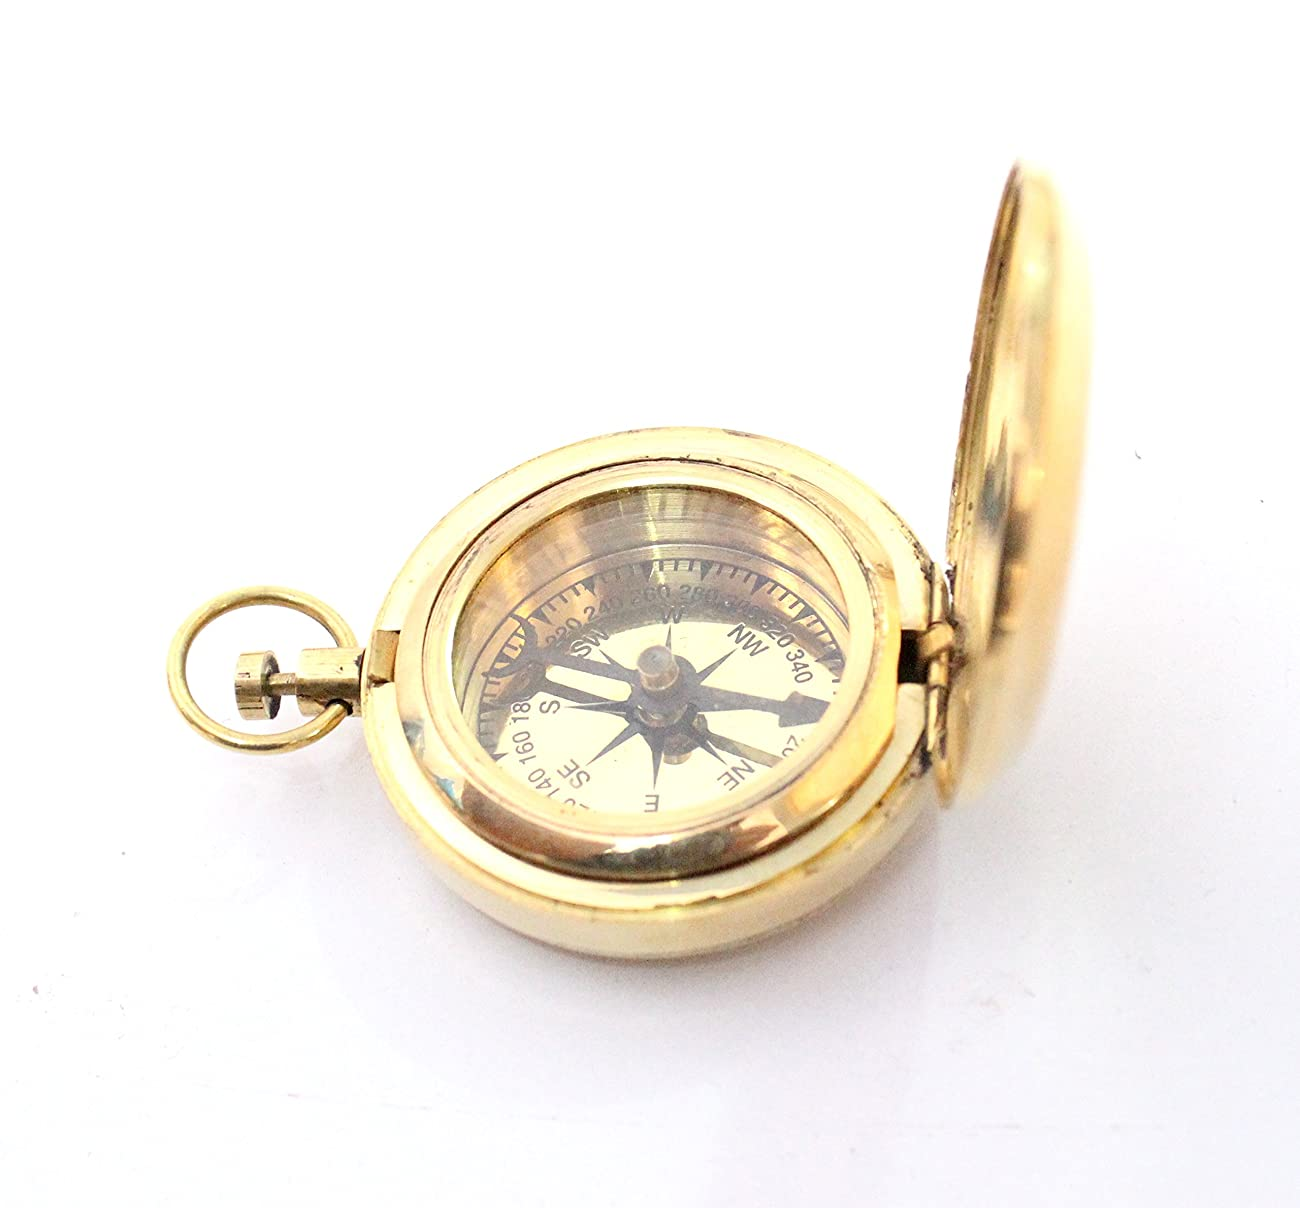 Nautical Collectible Retro Style Compass Decorative Gift Item Brass Finish Compass 2